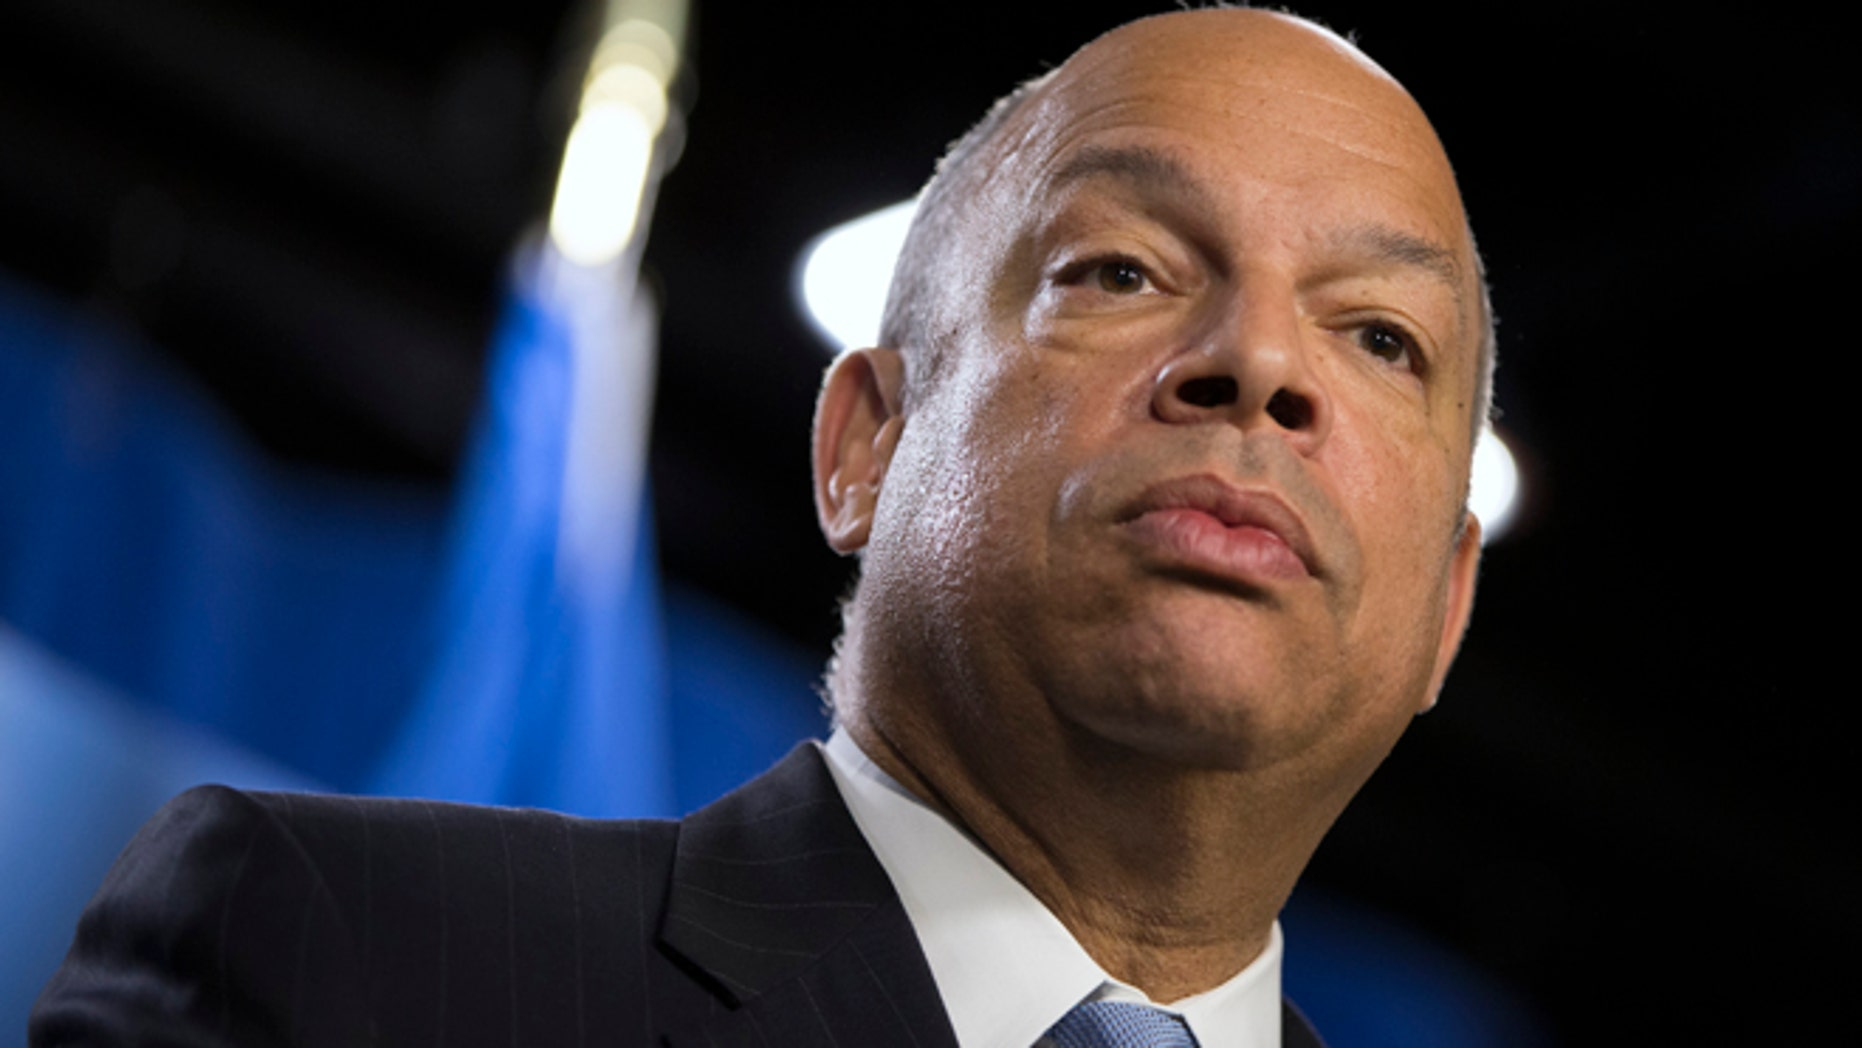 FILE - In this March 18, 2014, file photo, Department of Homeland Security Secretary Jeh Johnson speaks during a news conference in Washington. Johnson, who's conducting a politically charged review of the nation's deportation policy, said Thursday, May 15 he's looking at making changes to a much-criticized program that runs people booked for local crimes through a federal immigration database.(AP Photo/ Evan Vucci, File)